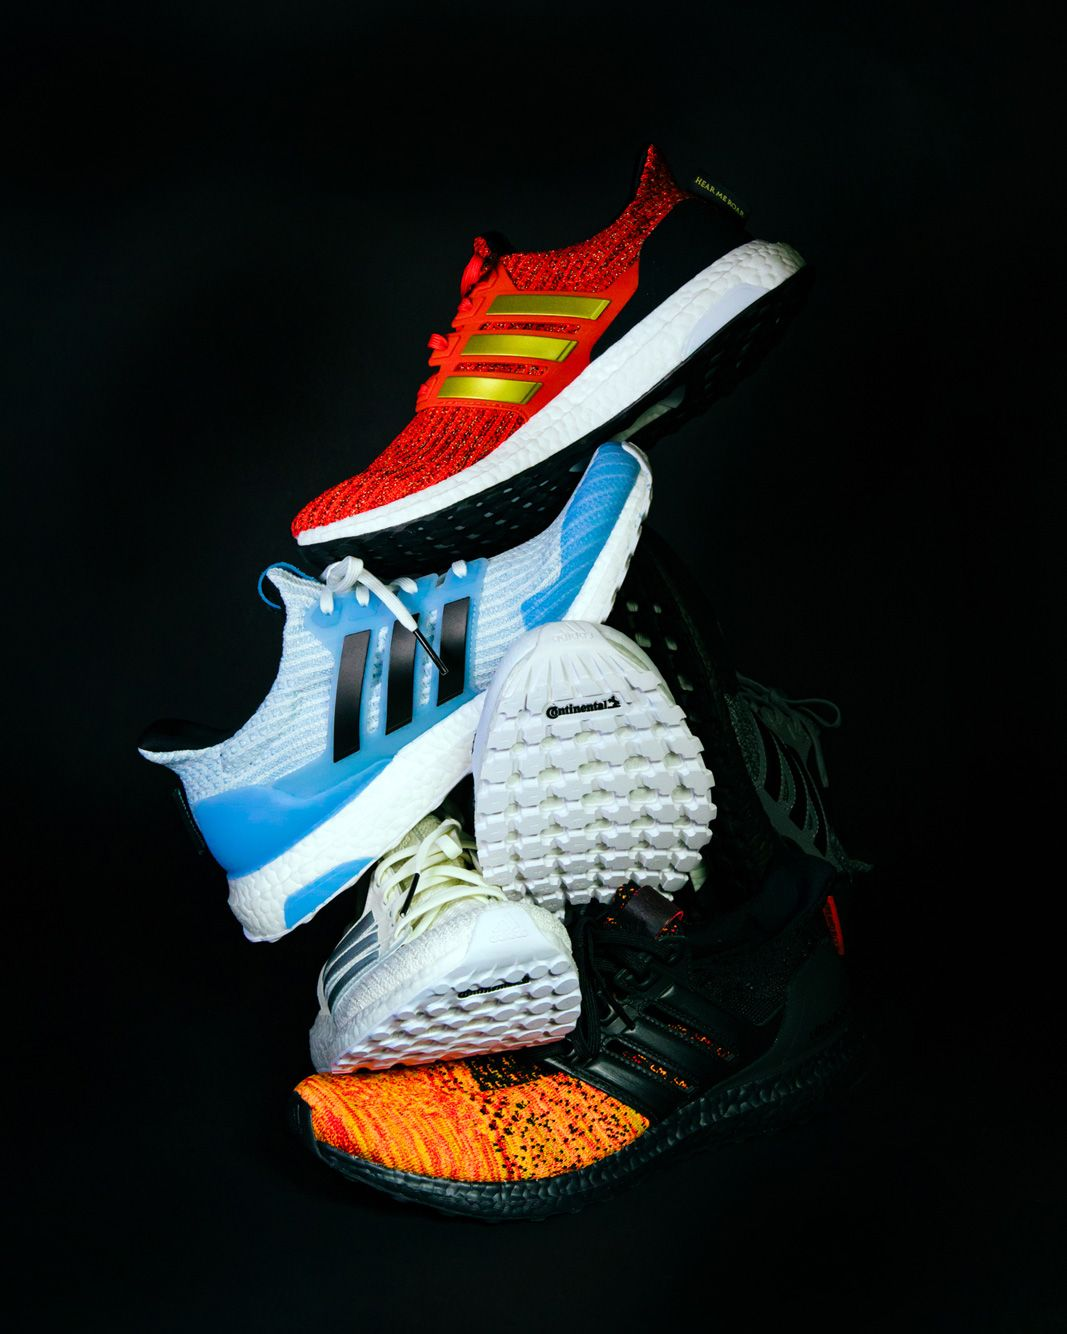 the best attitude d49fe ae195 adidas and  Game of Thrones  collaborate on six Ultraboost sneakers  inspired by the show s characters.